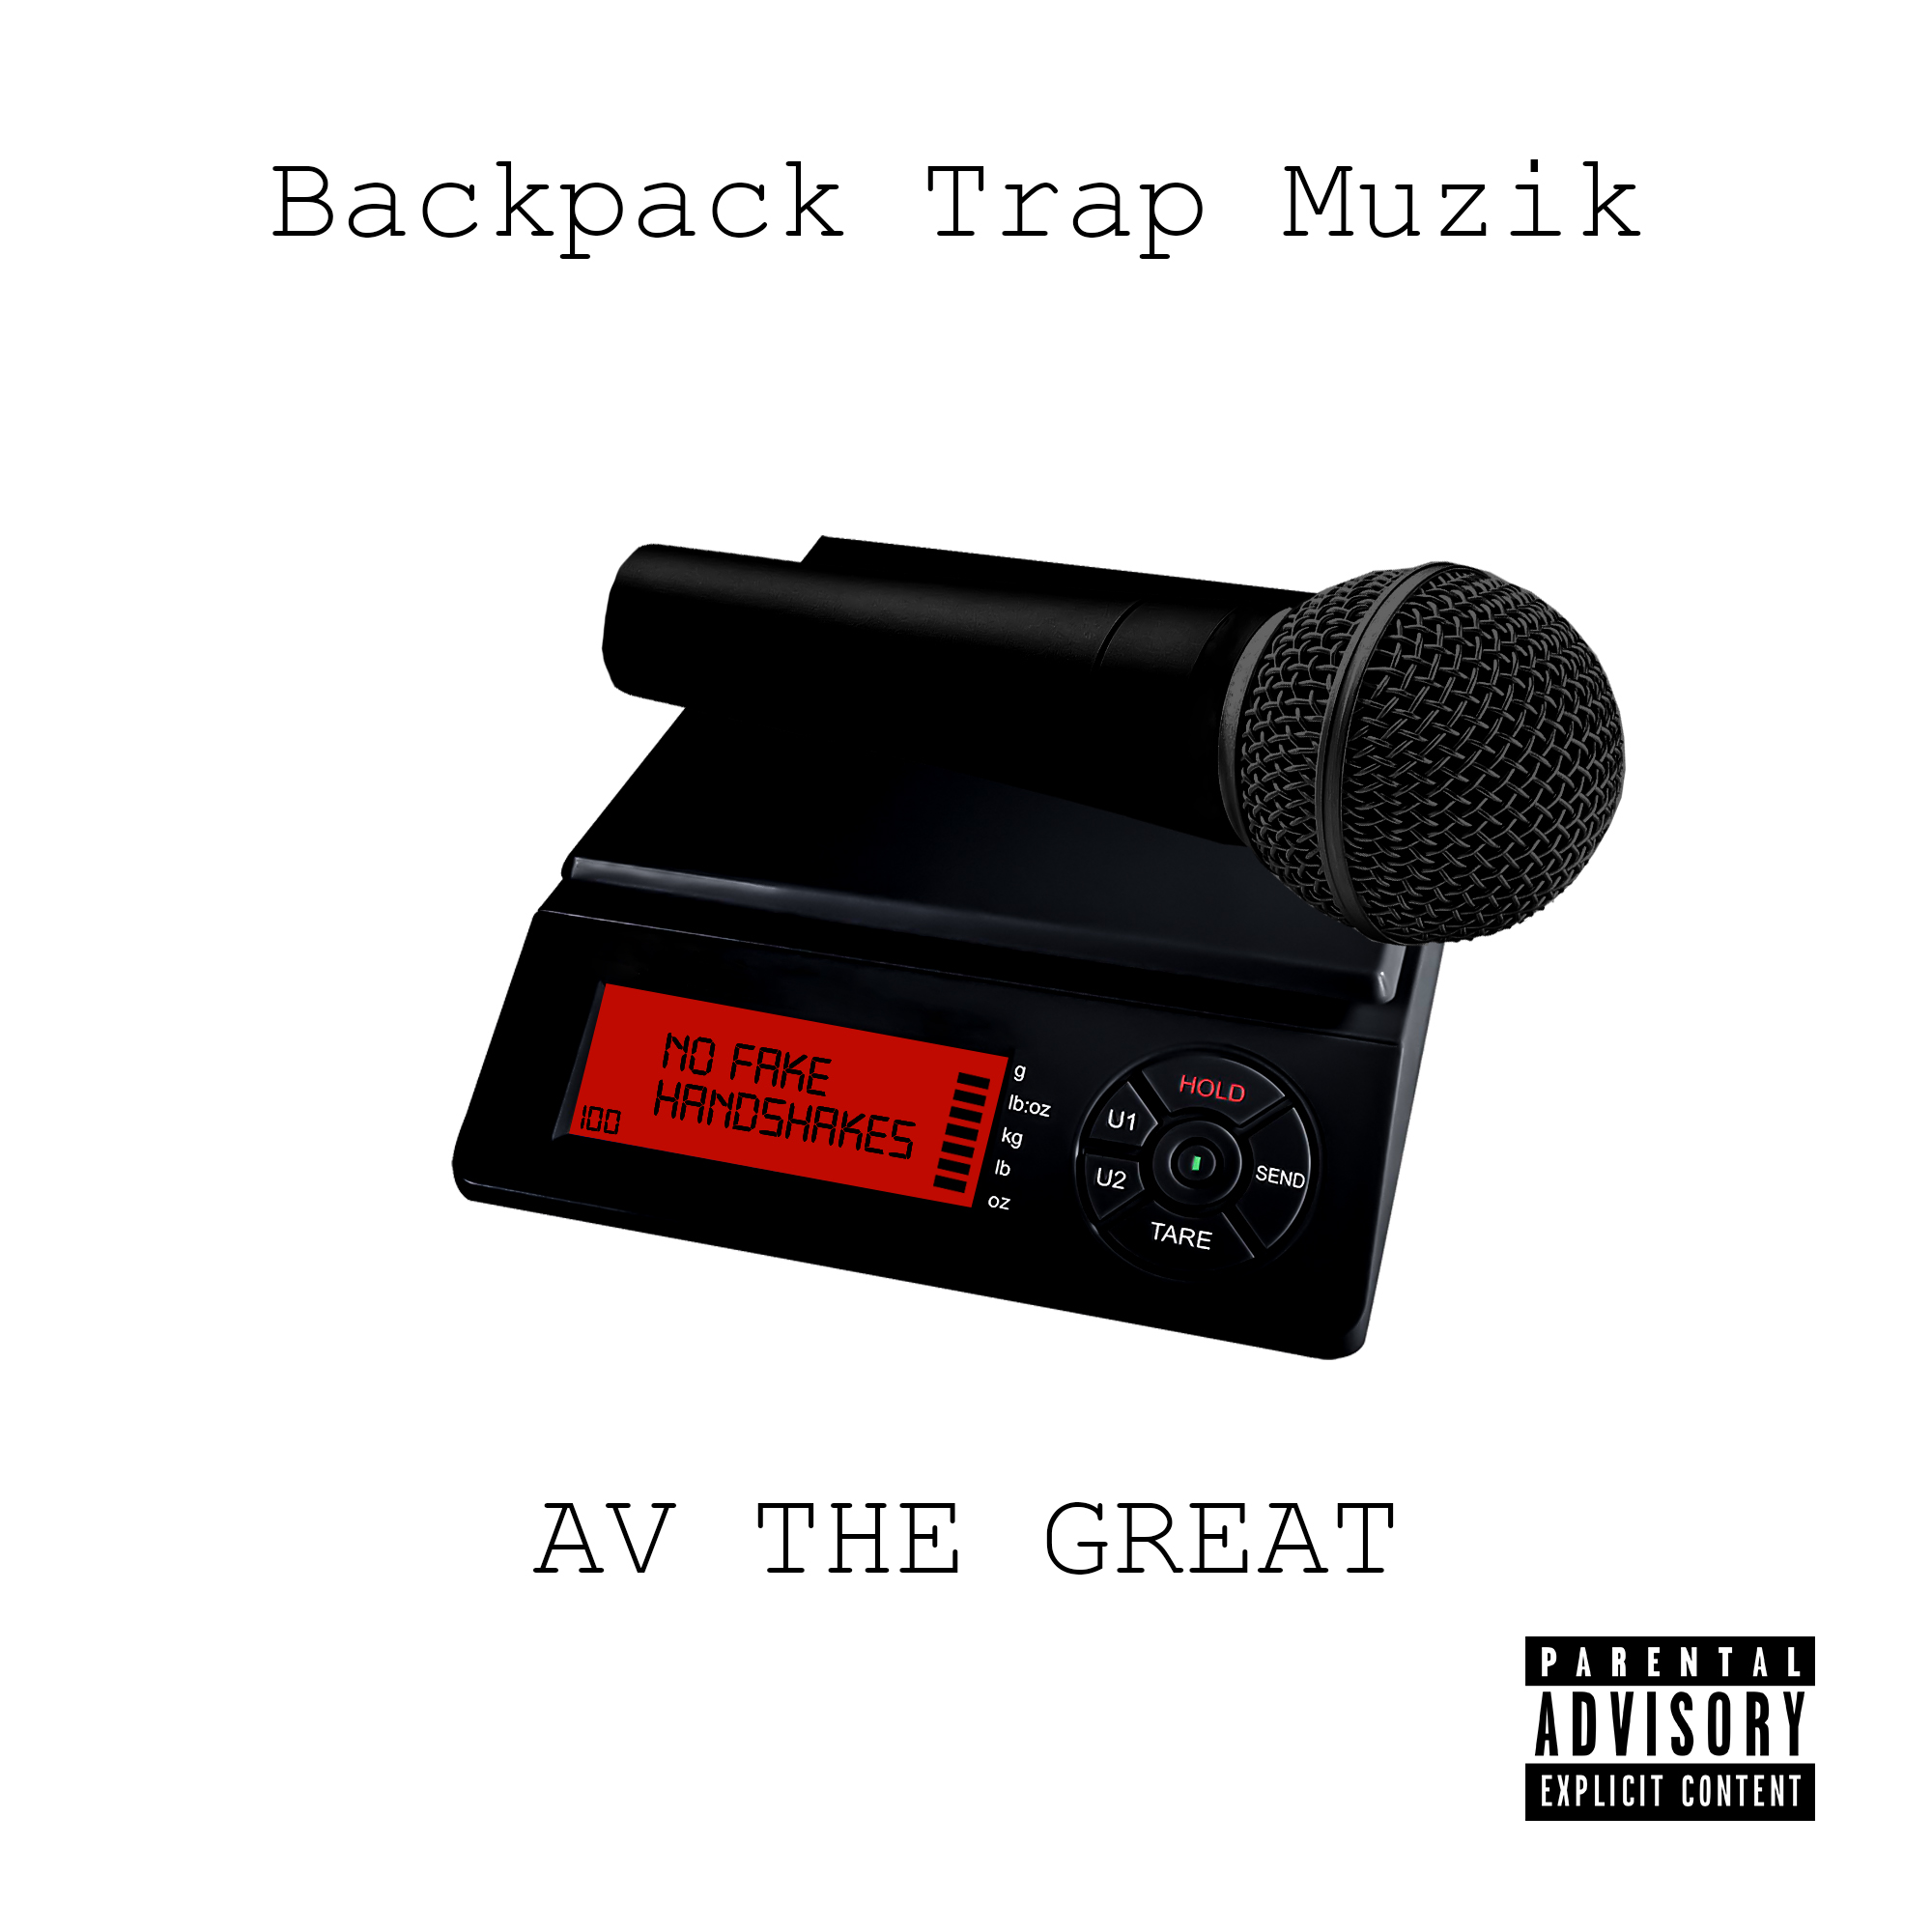 Backpack Trap Muzik